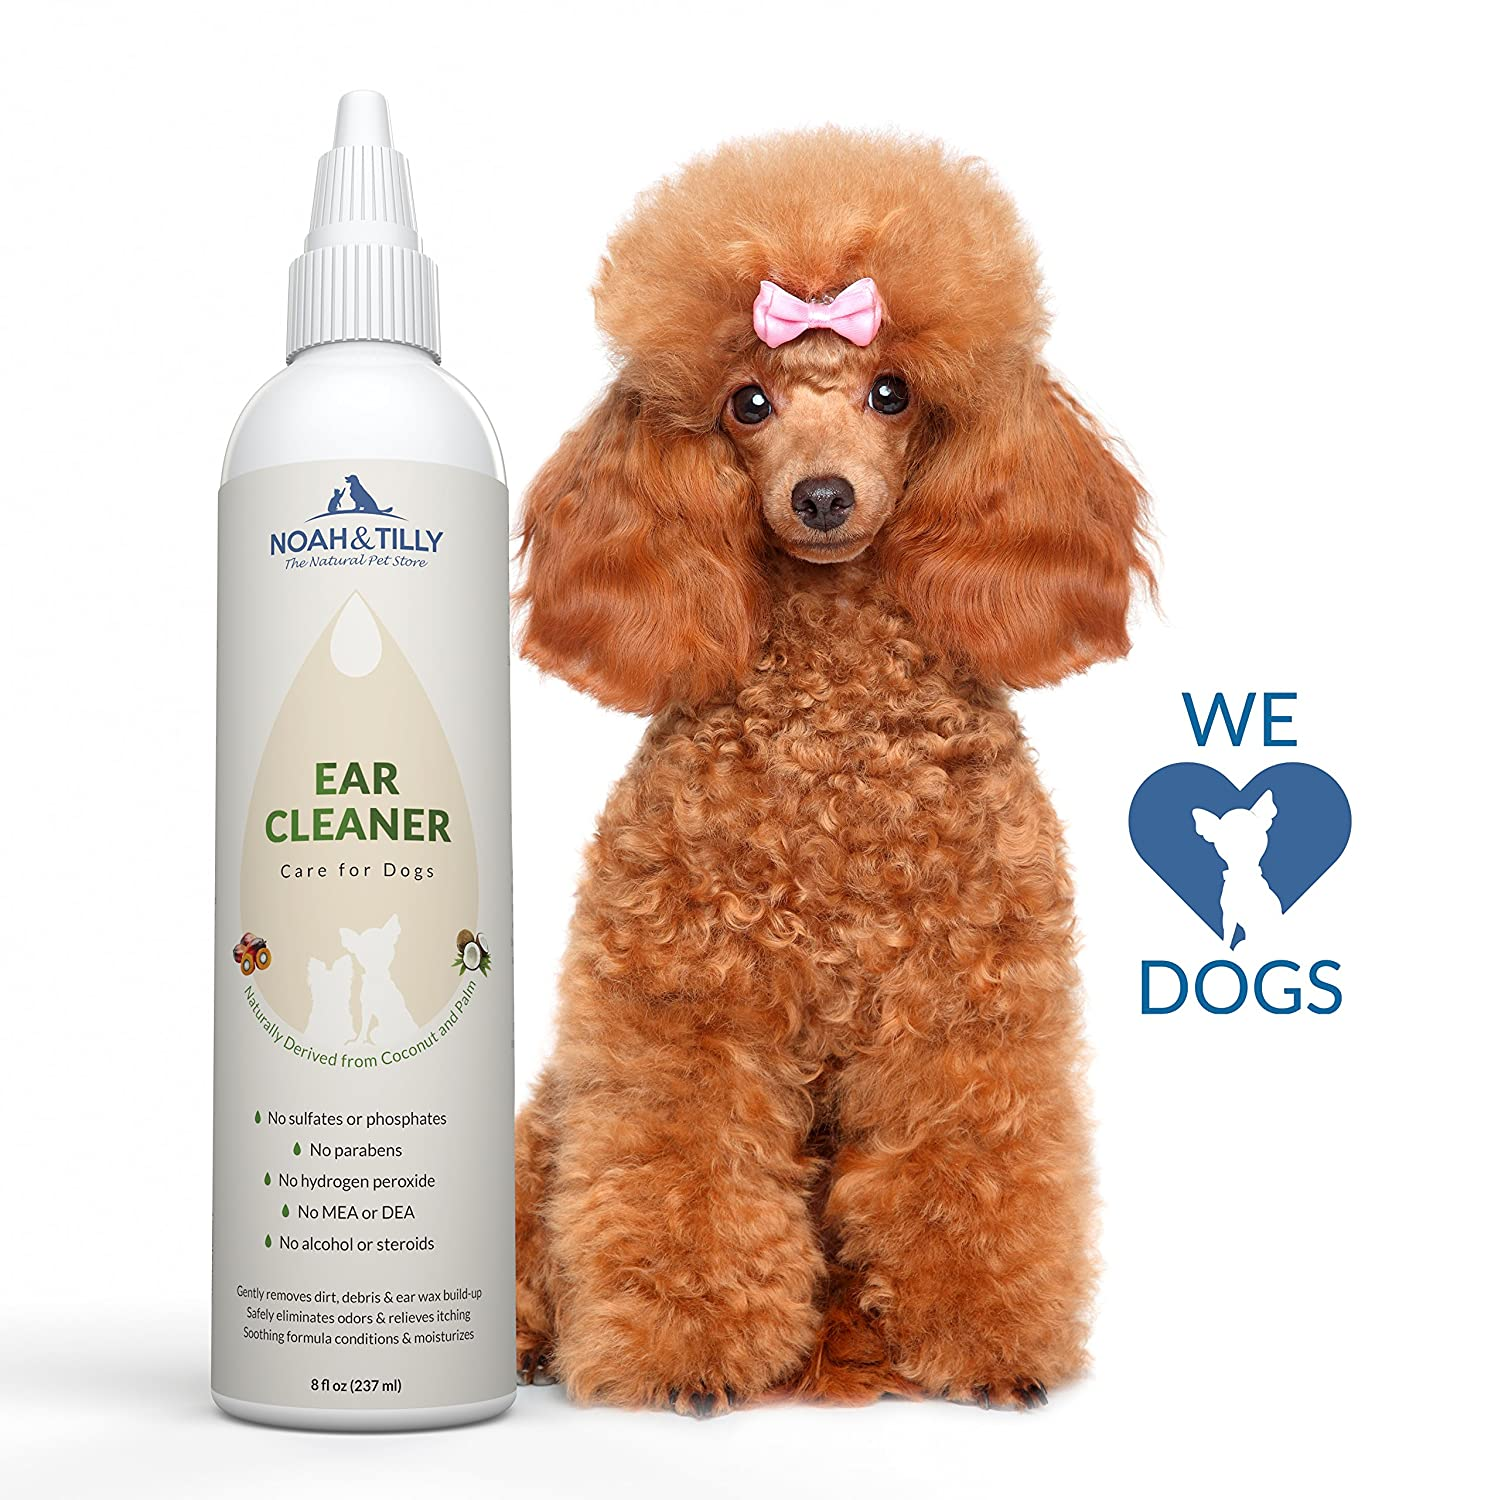 Amazon Natural Ear Cleaner for Dogs Gently Cleans Dogs